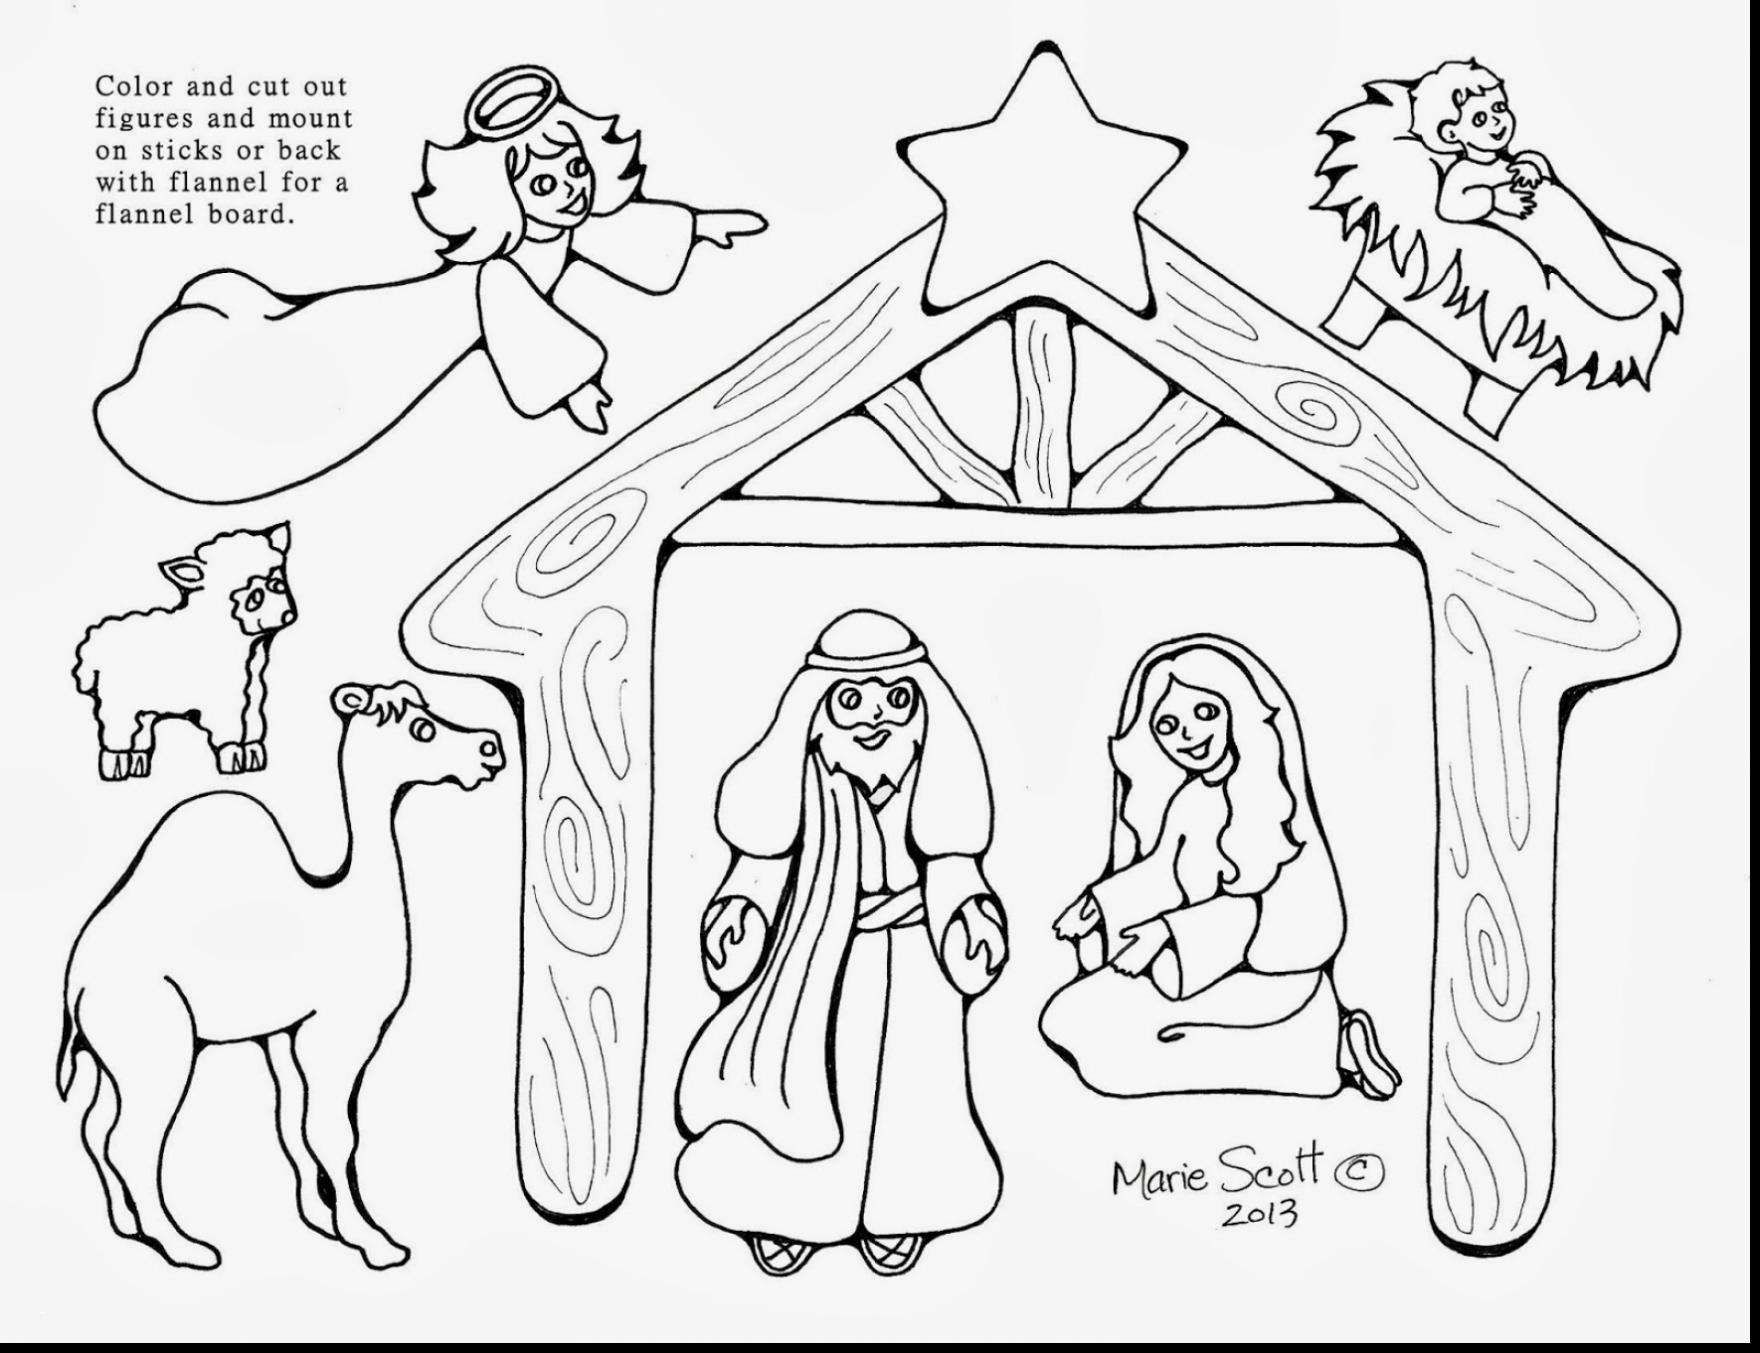 Free Printable Coloring Pages Of Nativity Scene Printable Coloring Page For Kids Nativity Coloring Pages Nativity Coloring Jesus Coloring Pages